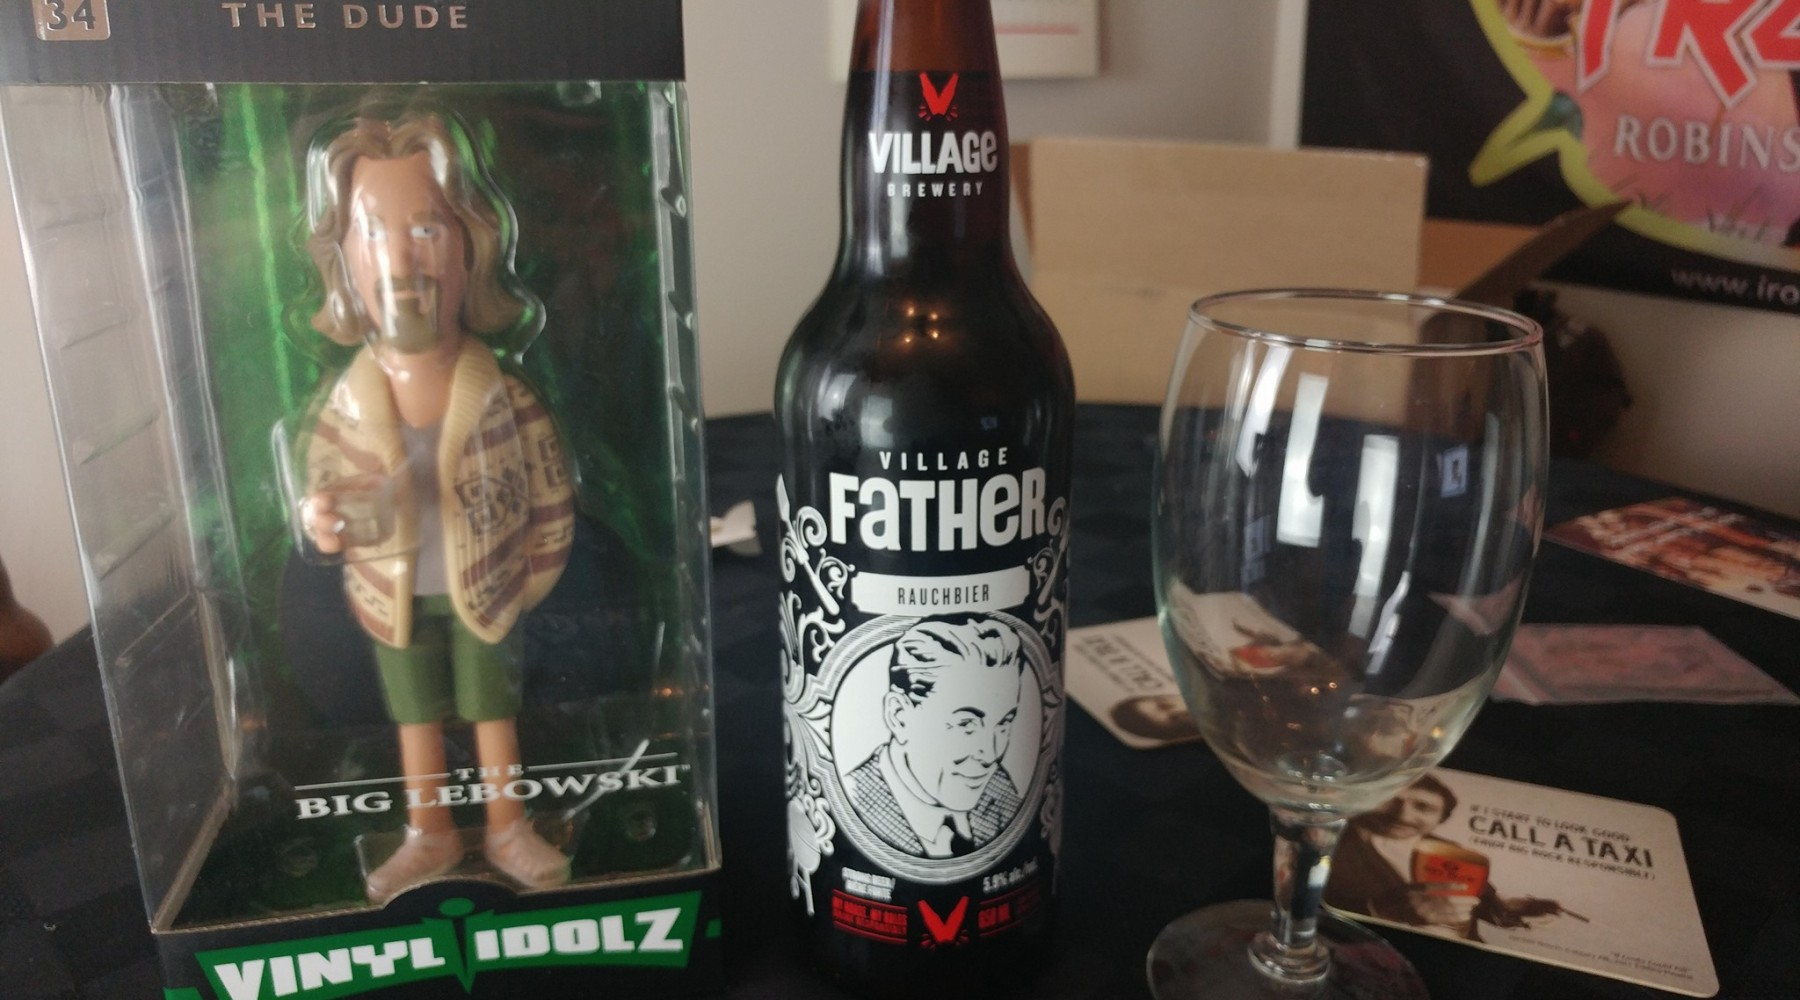 Village Brewery, Father Rauchbier Review